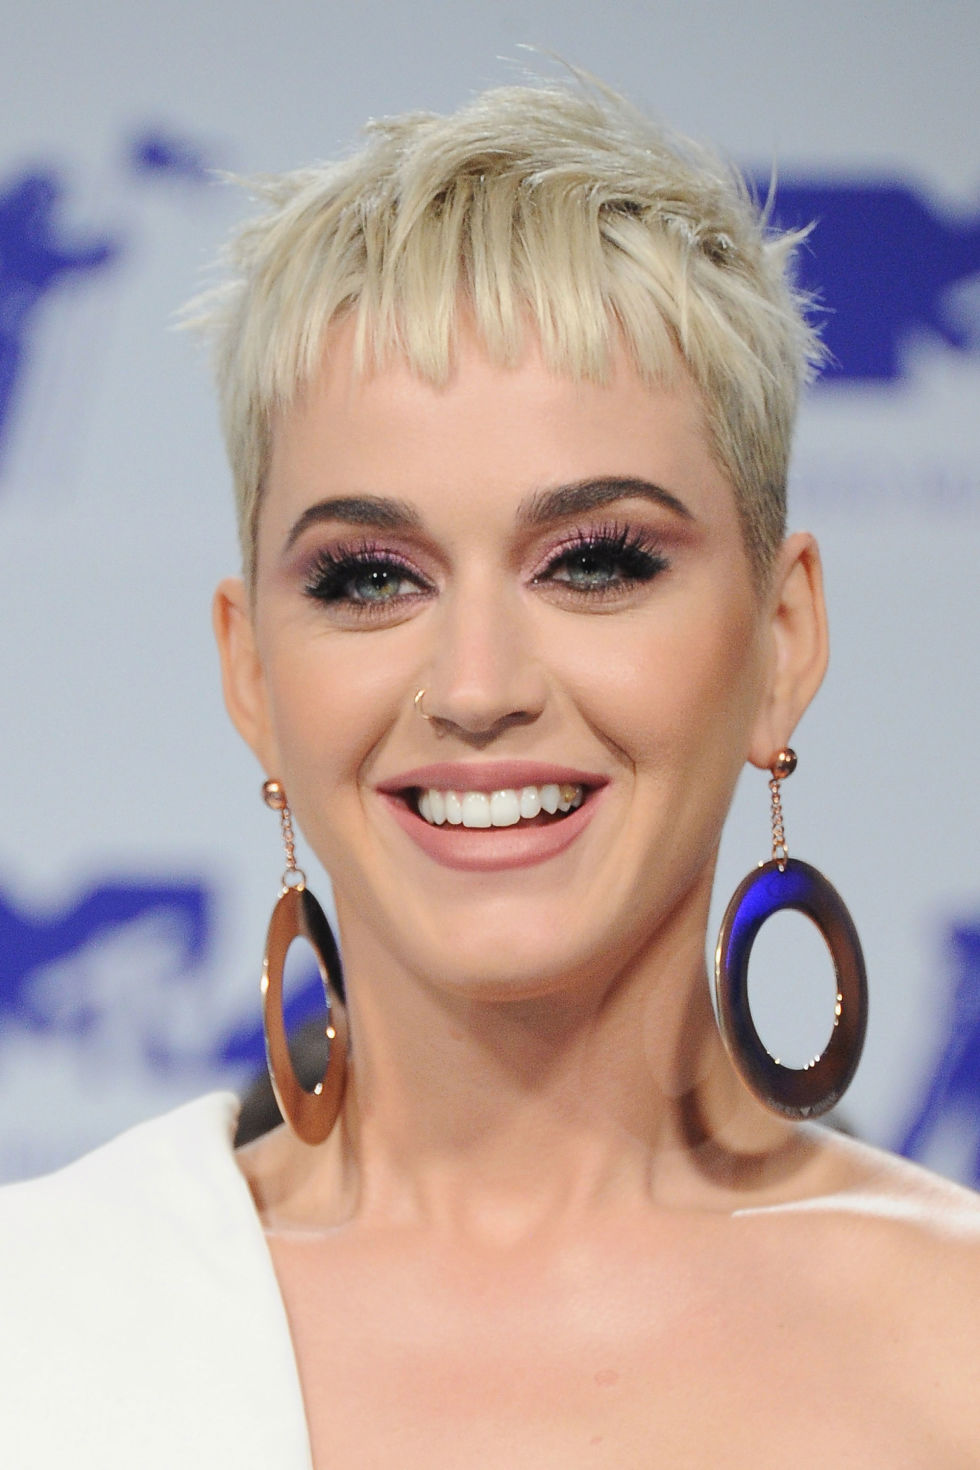 30 short hairstyles for thick hair 2017 - women's haircuts for